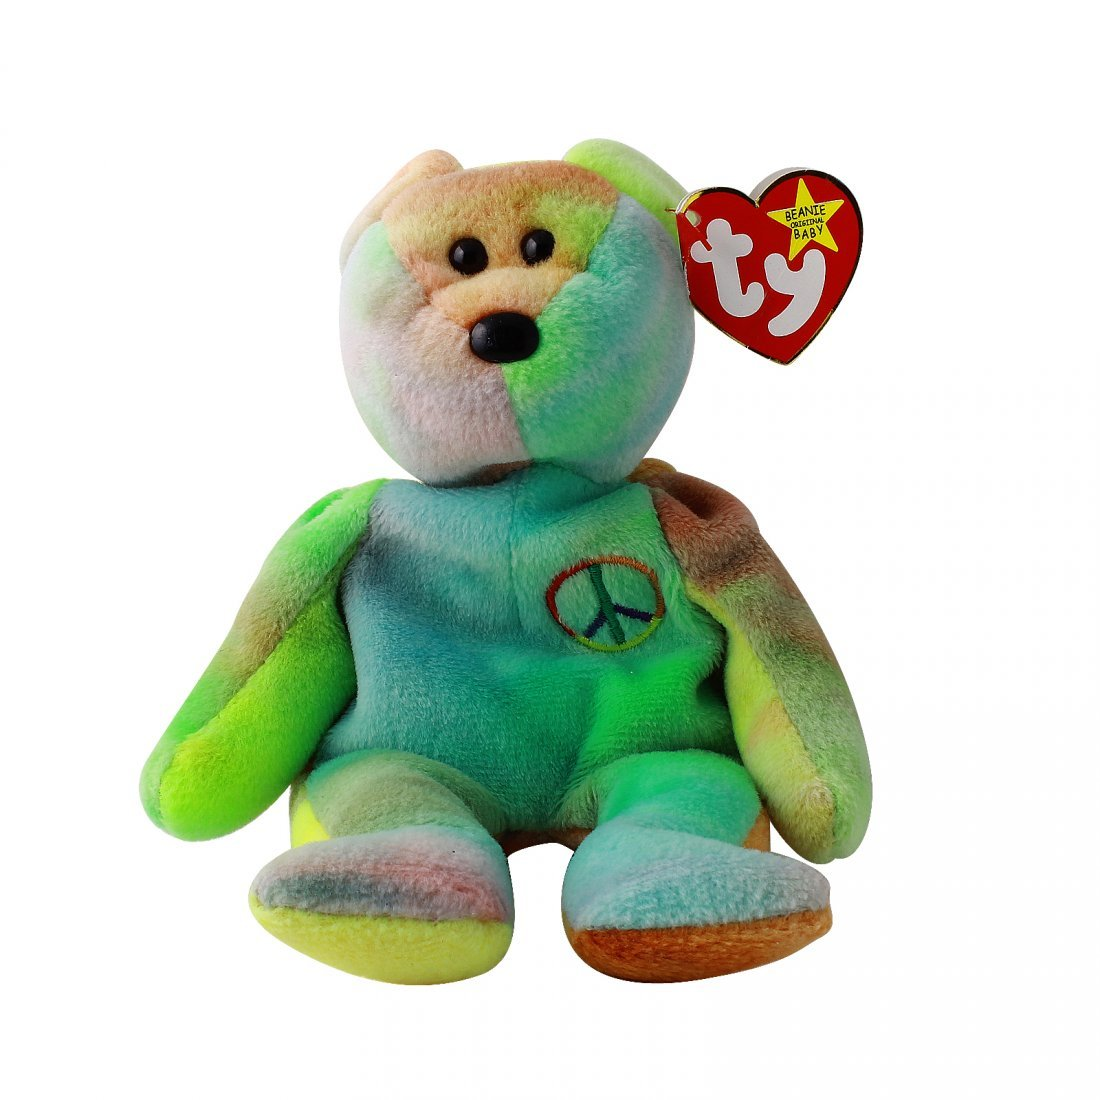 Discontinued TY Beanie Baby Multi-Colored PEACE BEAR: